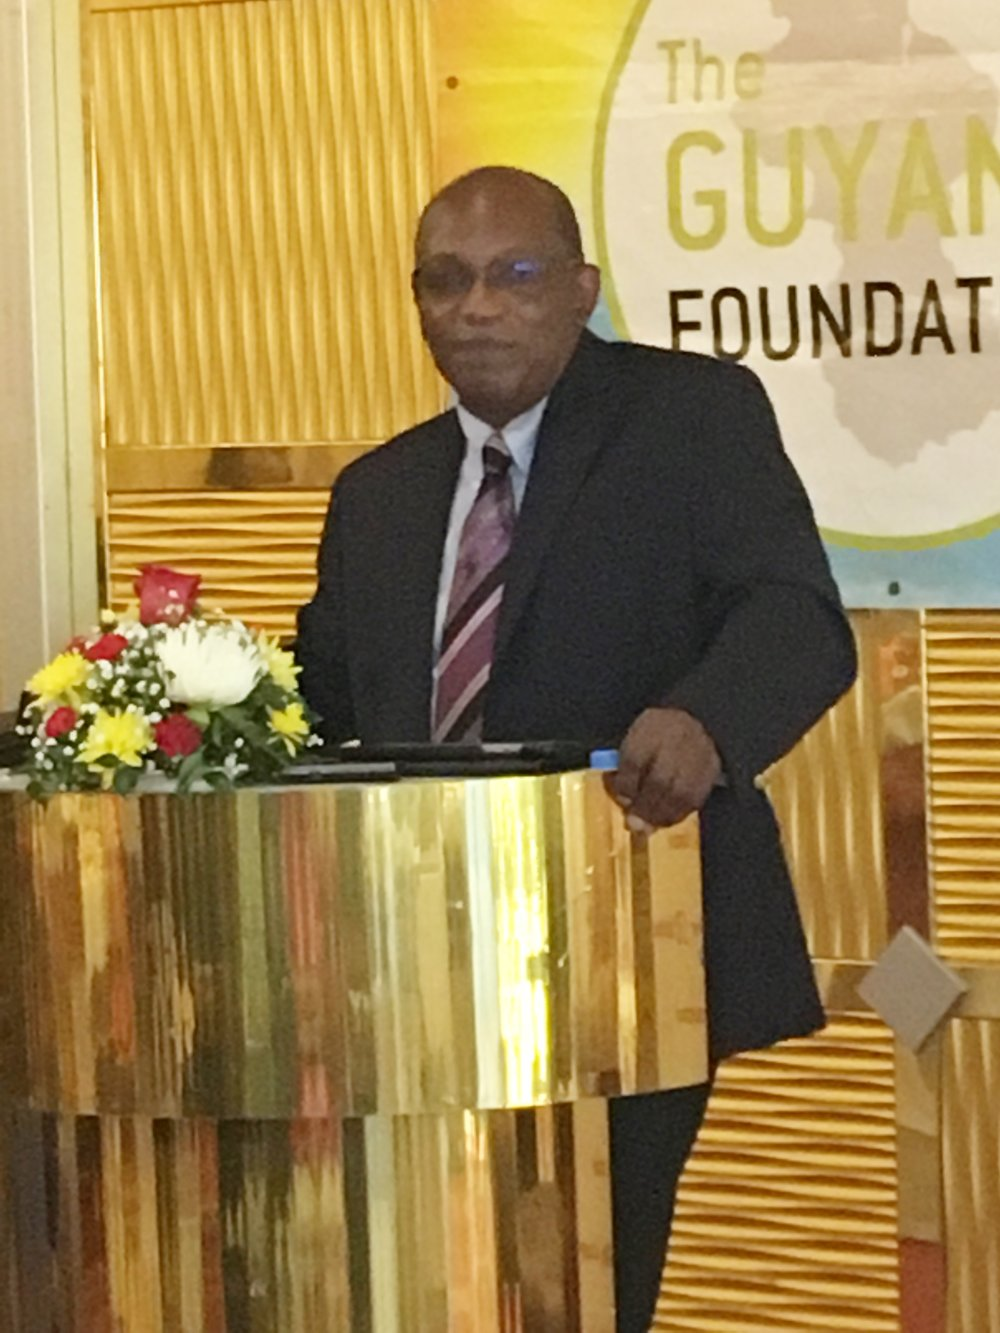 Mr. Eric Phillips, Trustee of the Guyana Foundation delivering brief remarks.